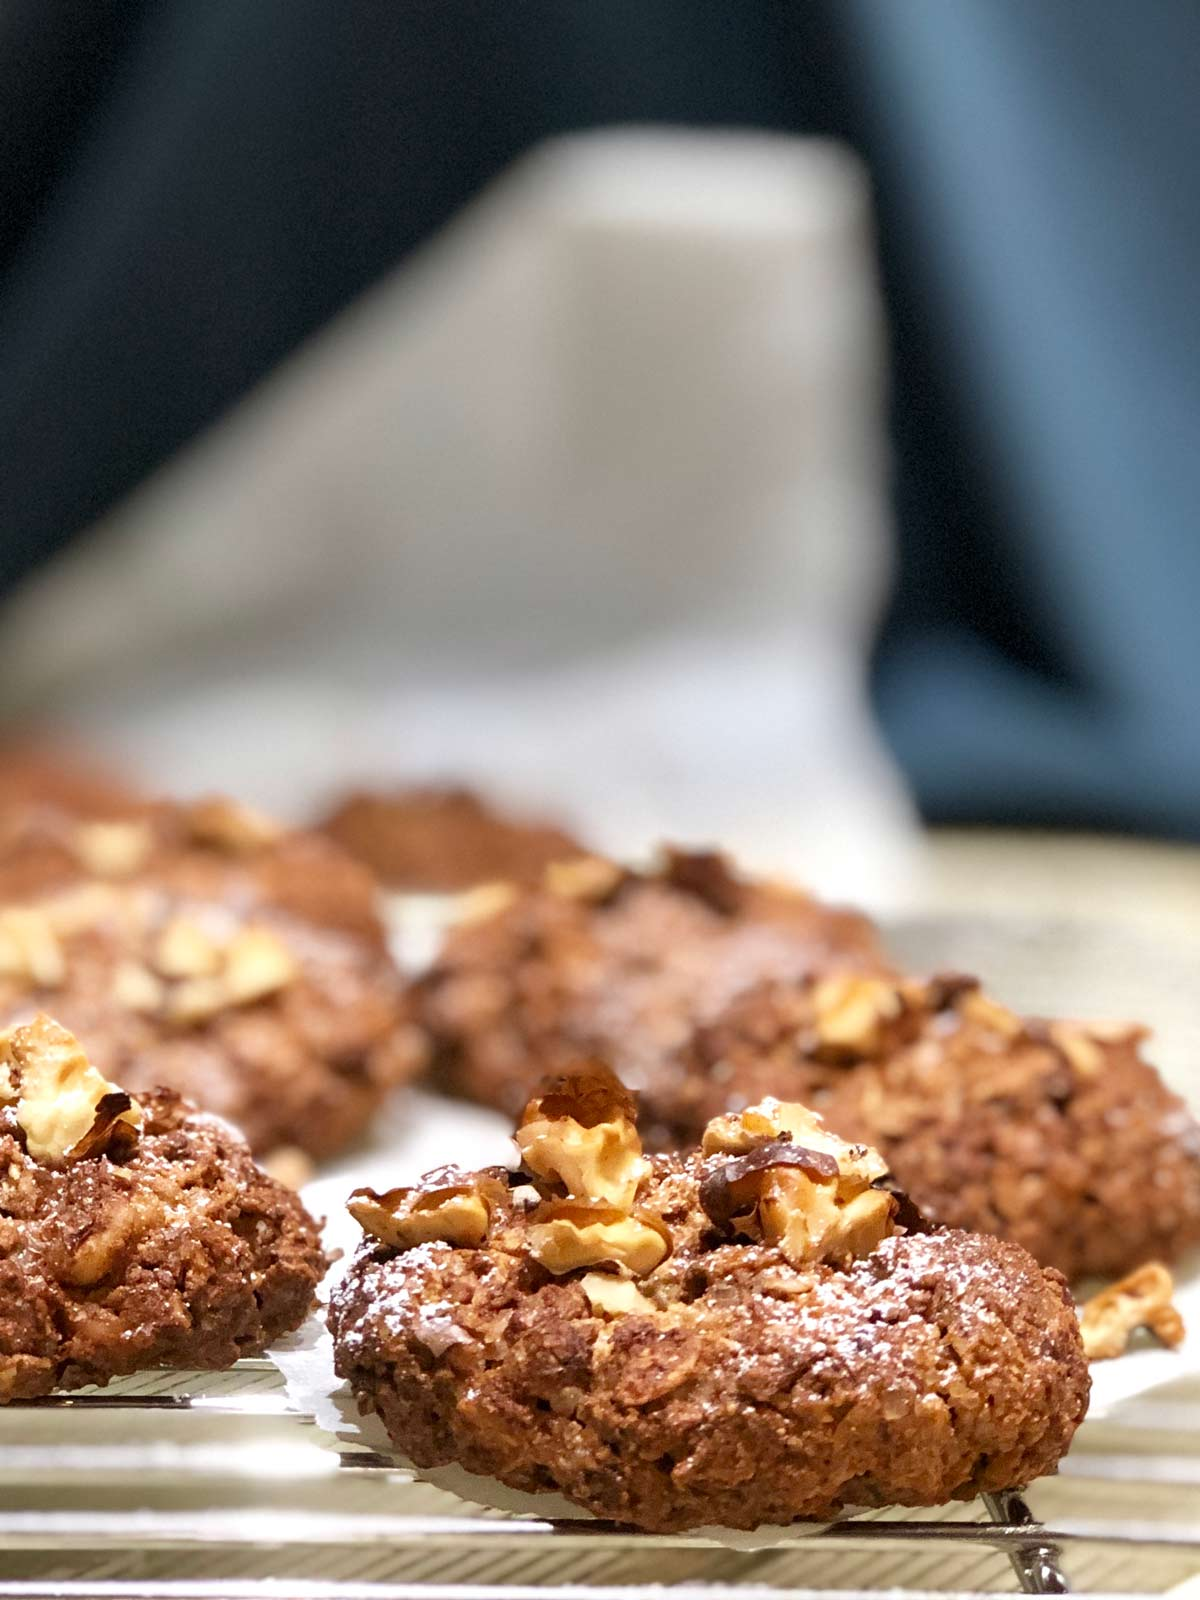 Pecan cookies with rye and barley flakes